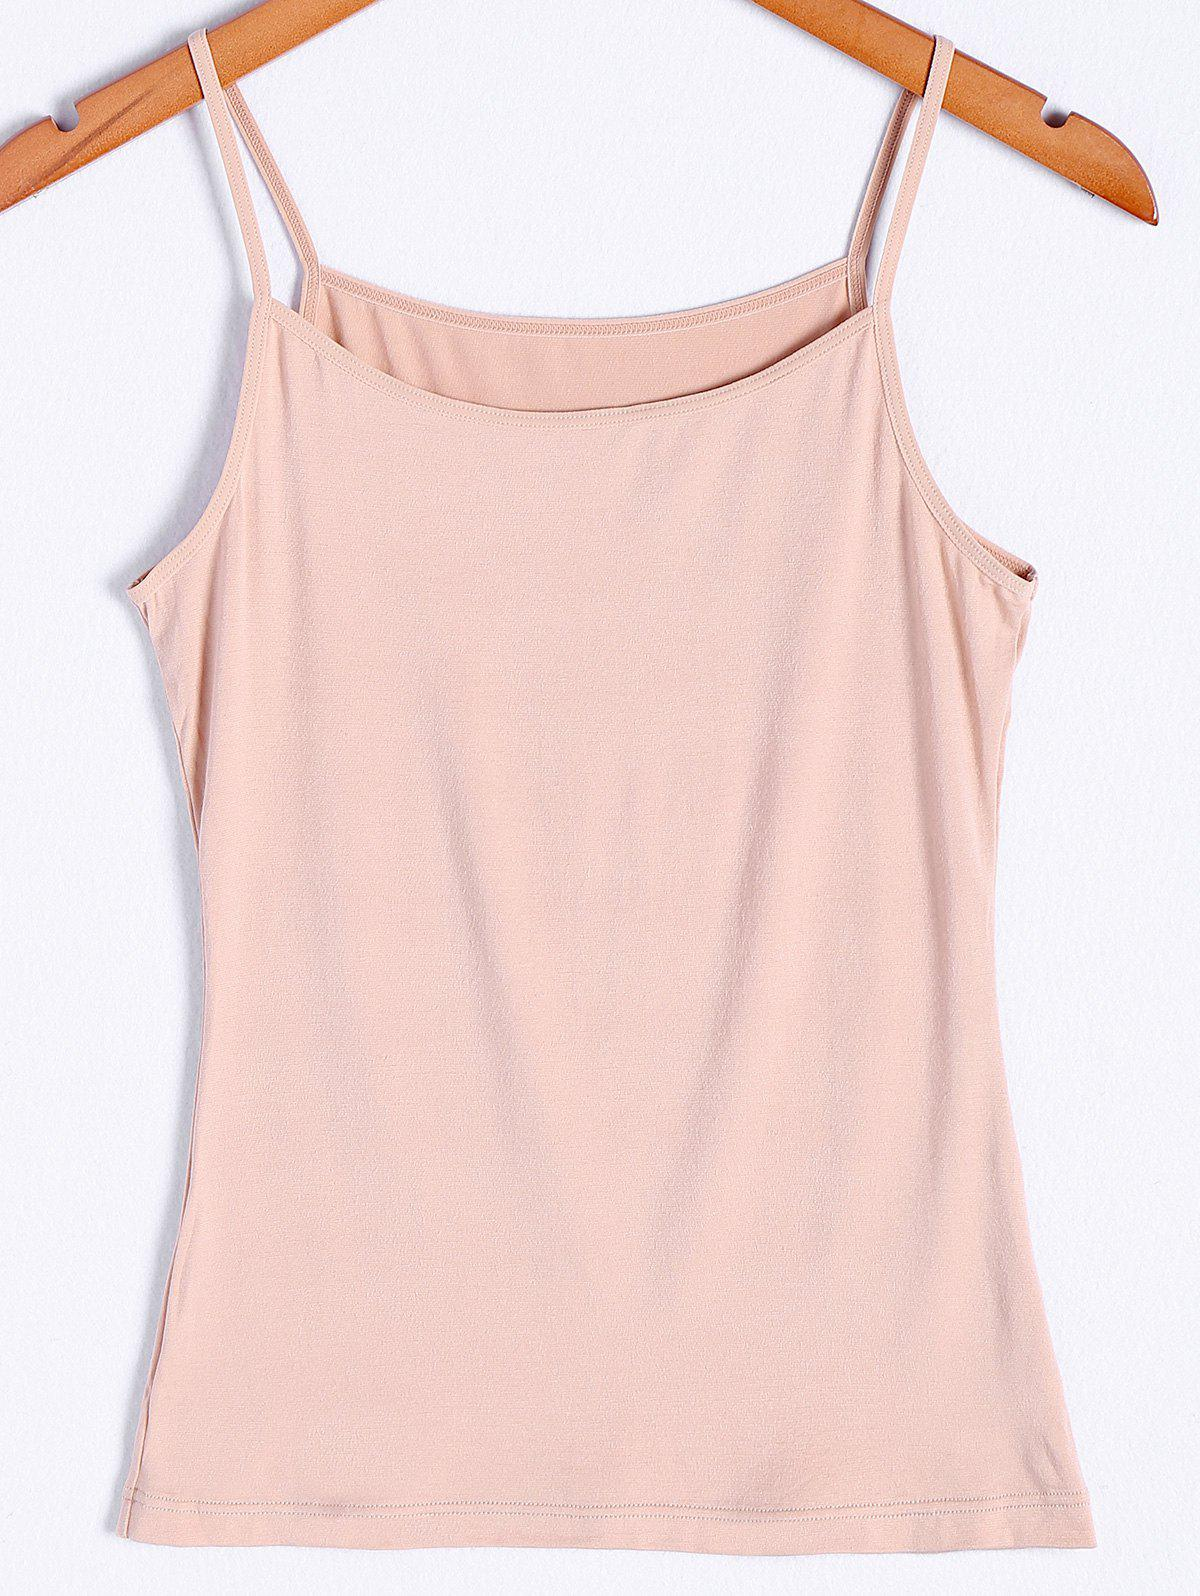 Refreshing Pure Color Tank Top For Women